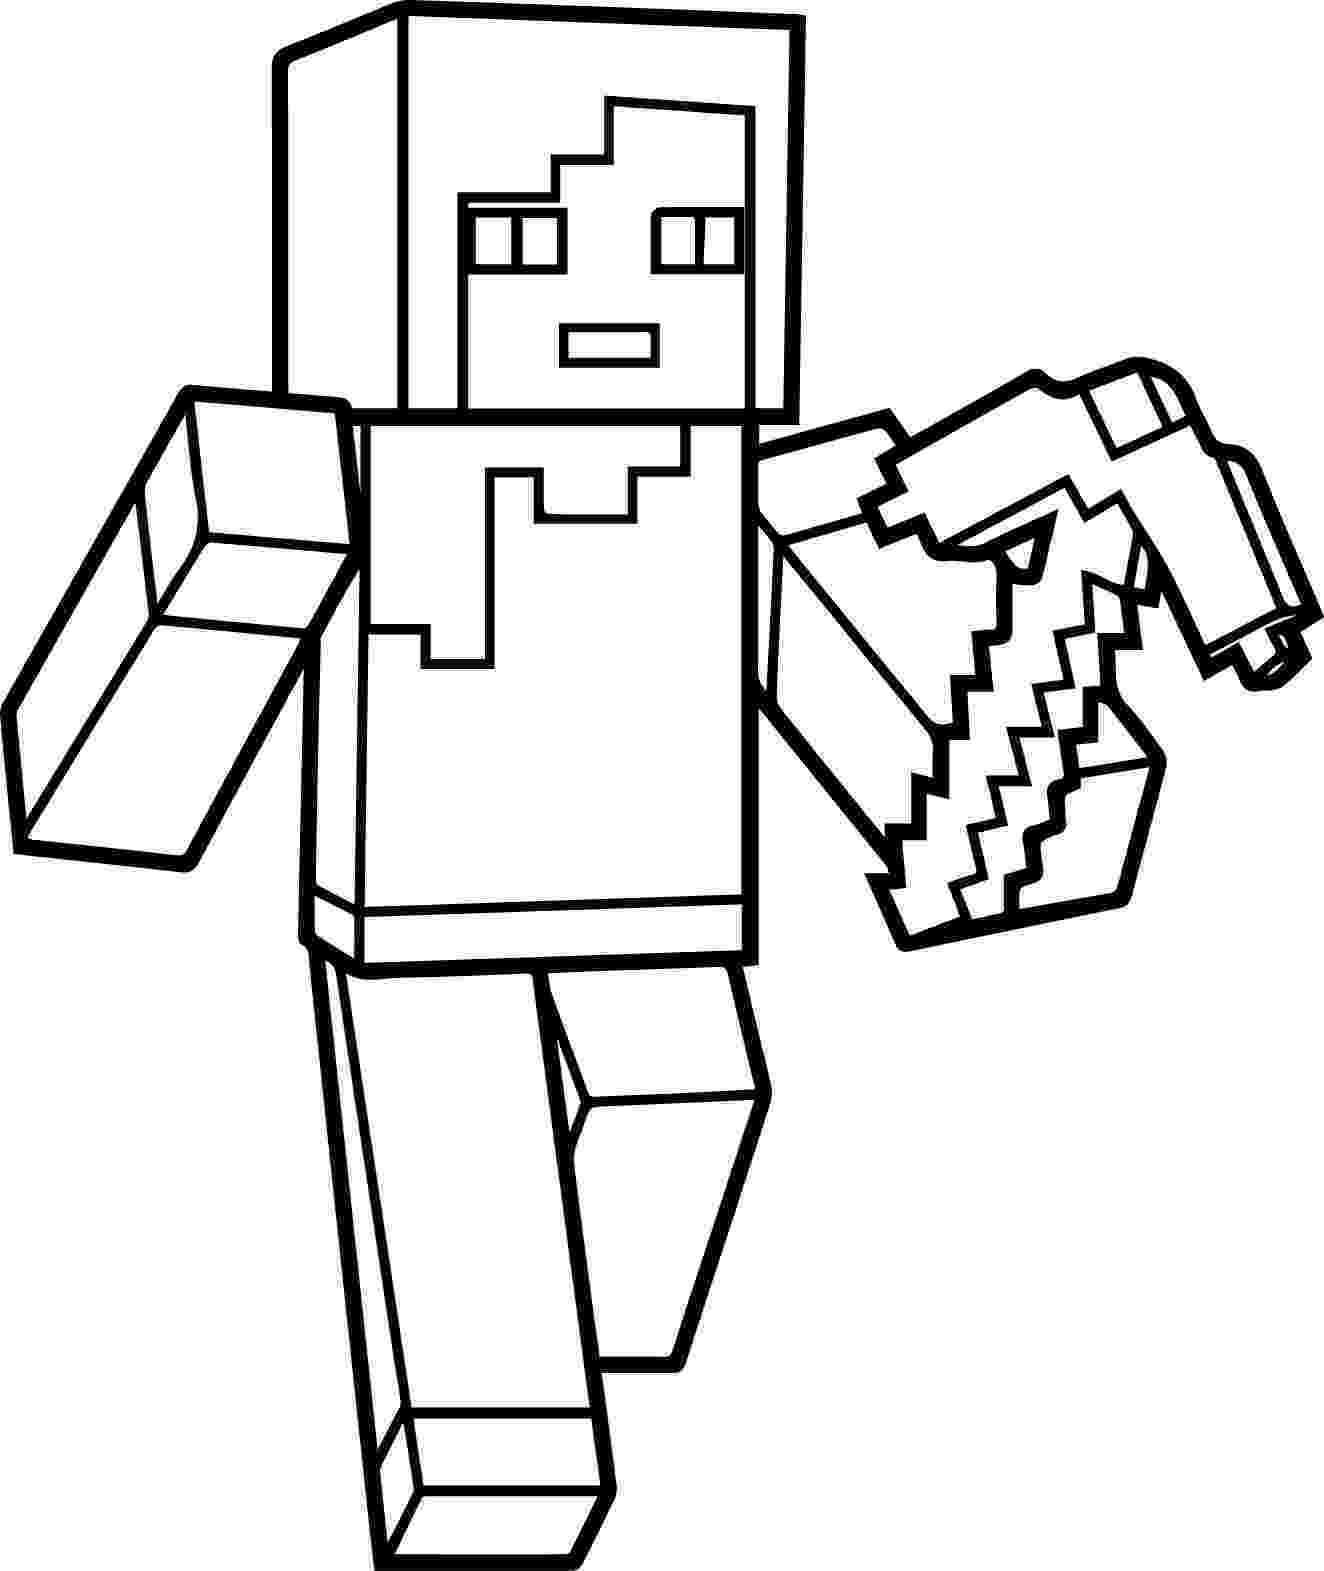 coloring pages for minecraft minecraft coloring pages best coloring pages for kids minecraft pages coloring for